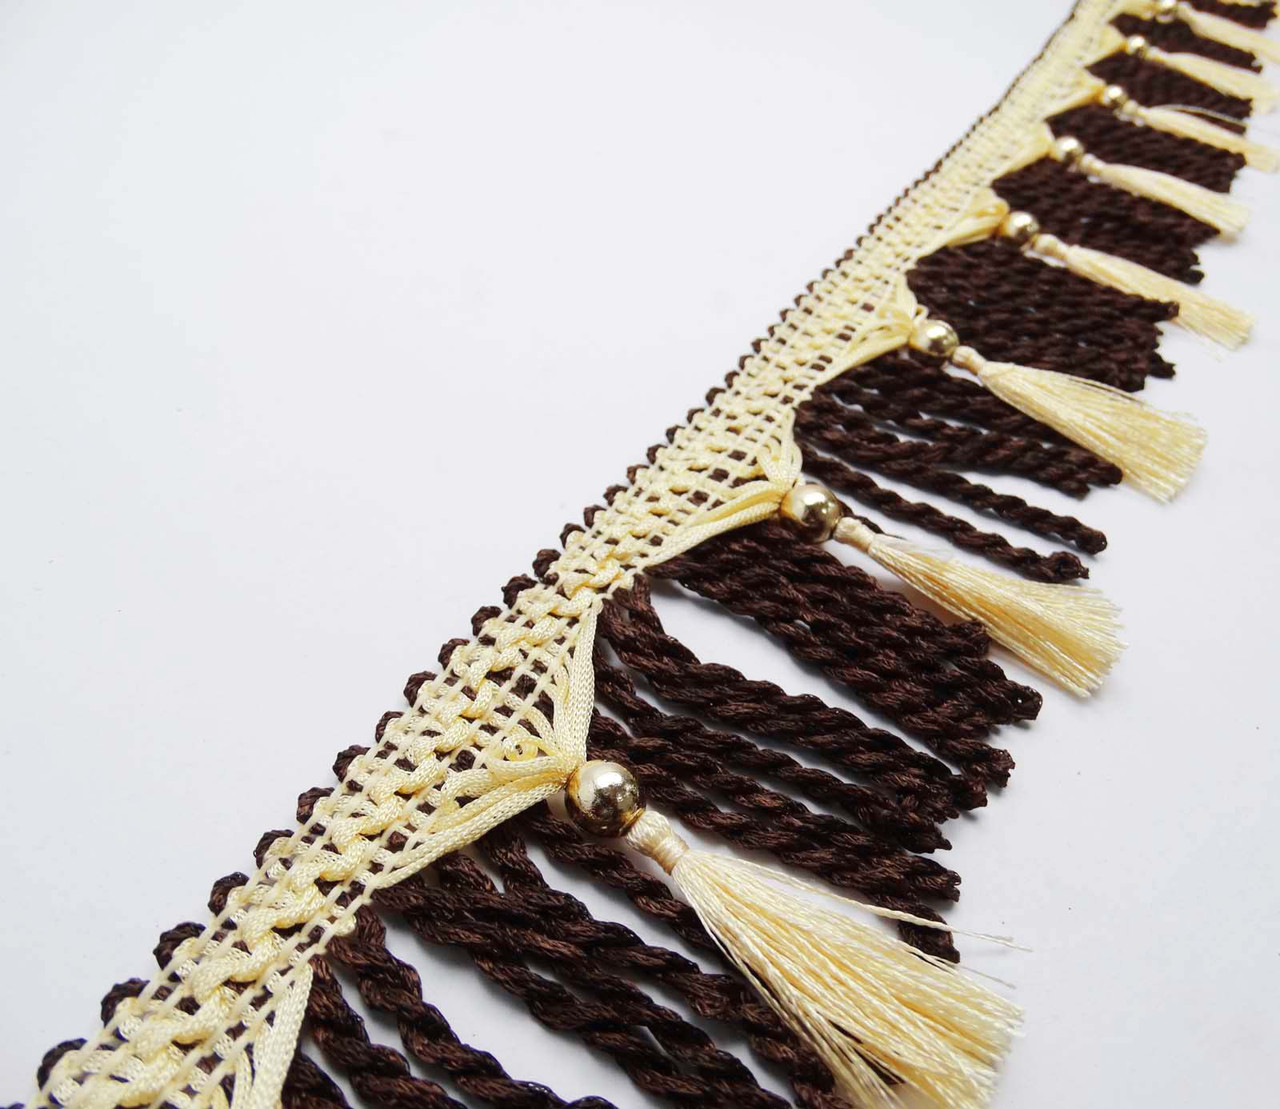 Brown Tassel Fringe Curtain Fringe Lace Upholstery Ribbon 3.5 Trim By The Yard